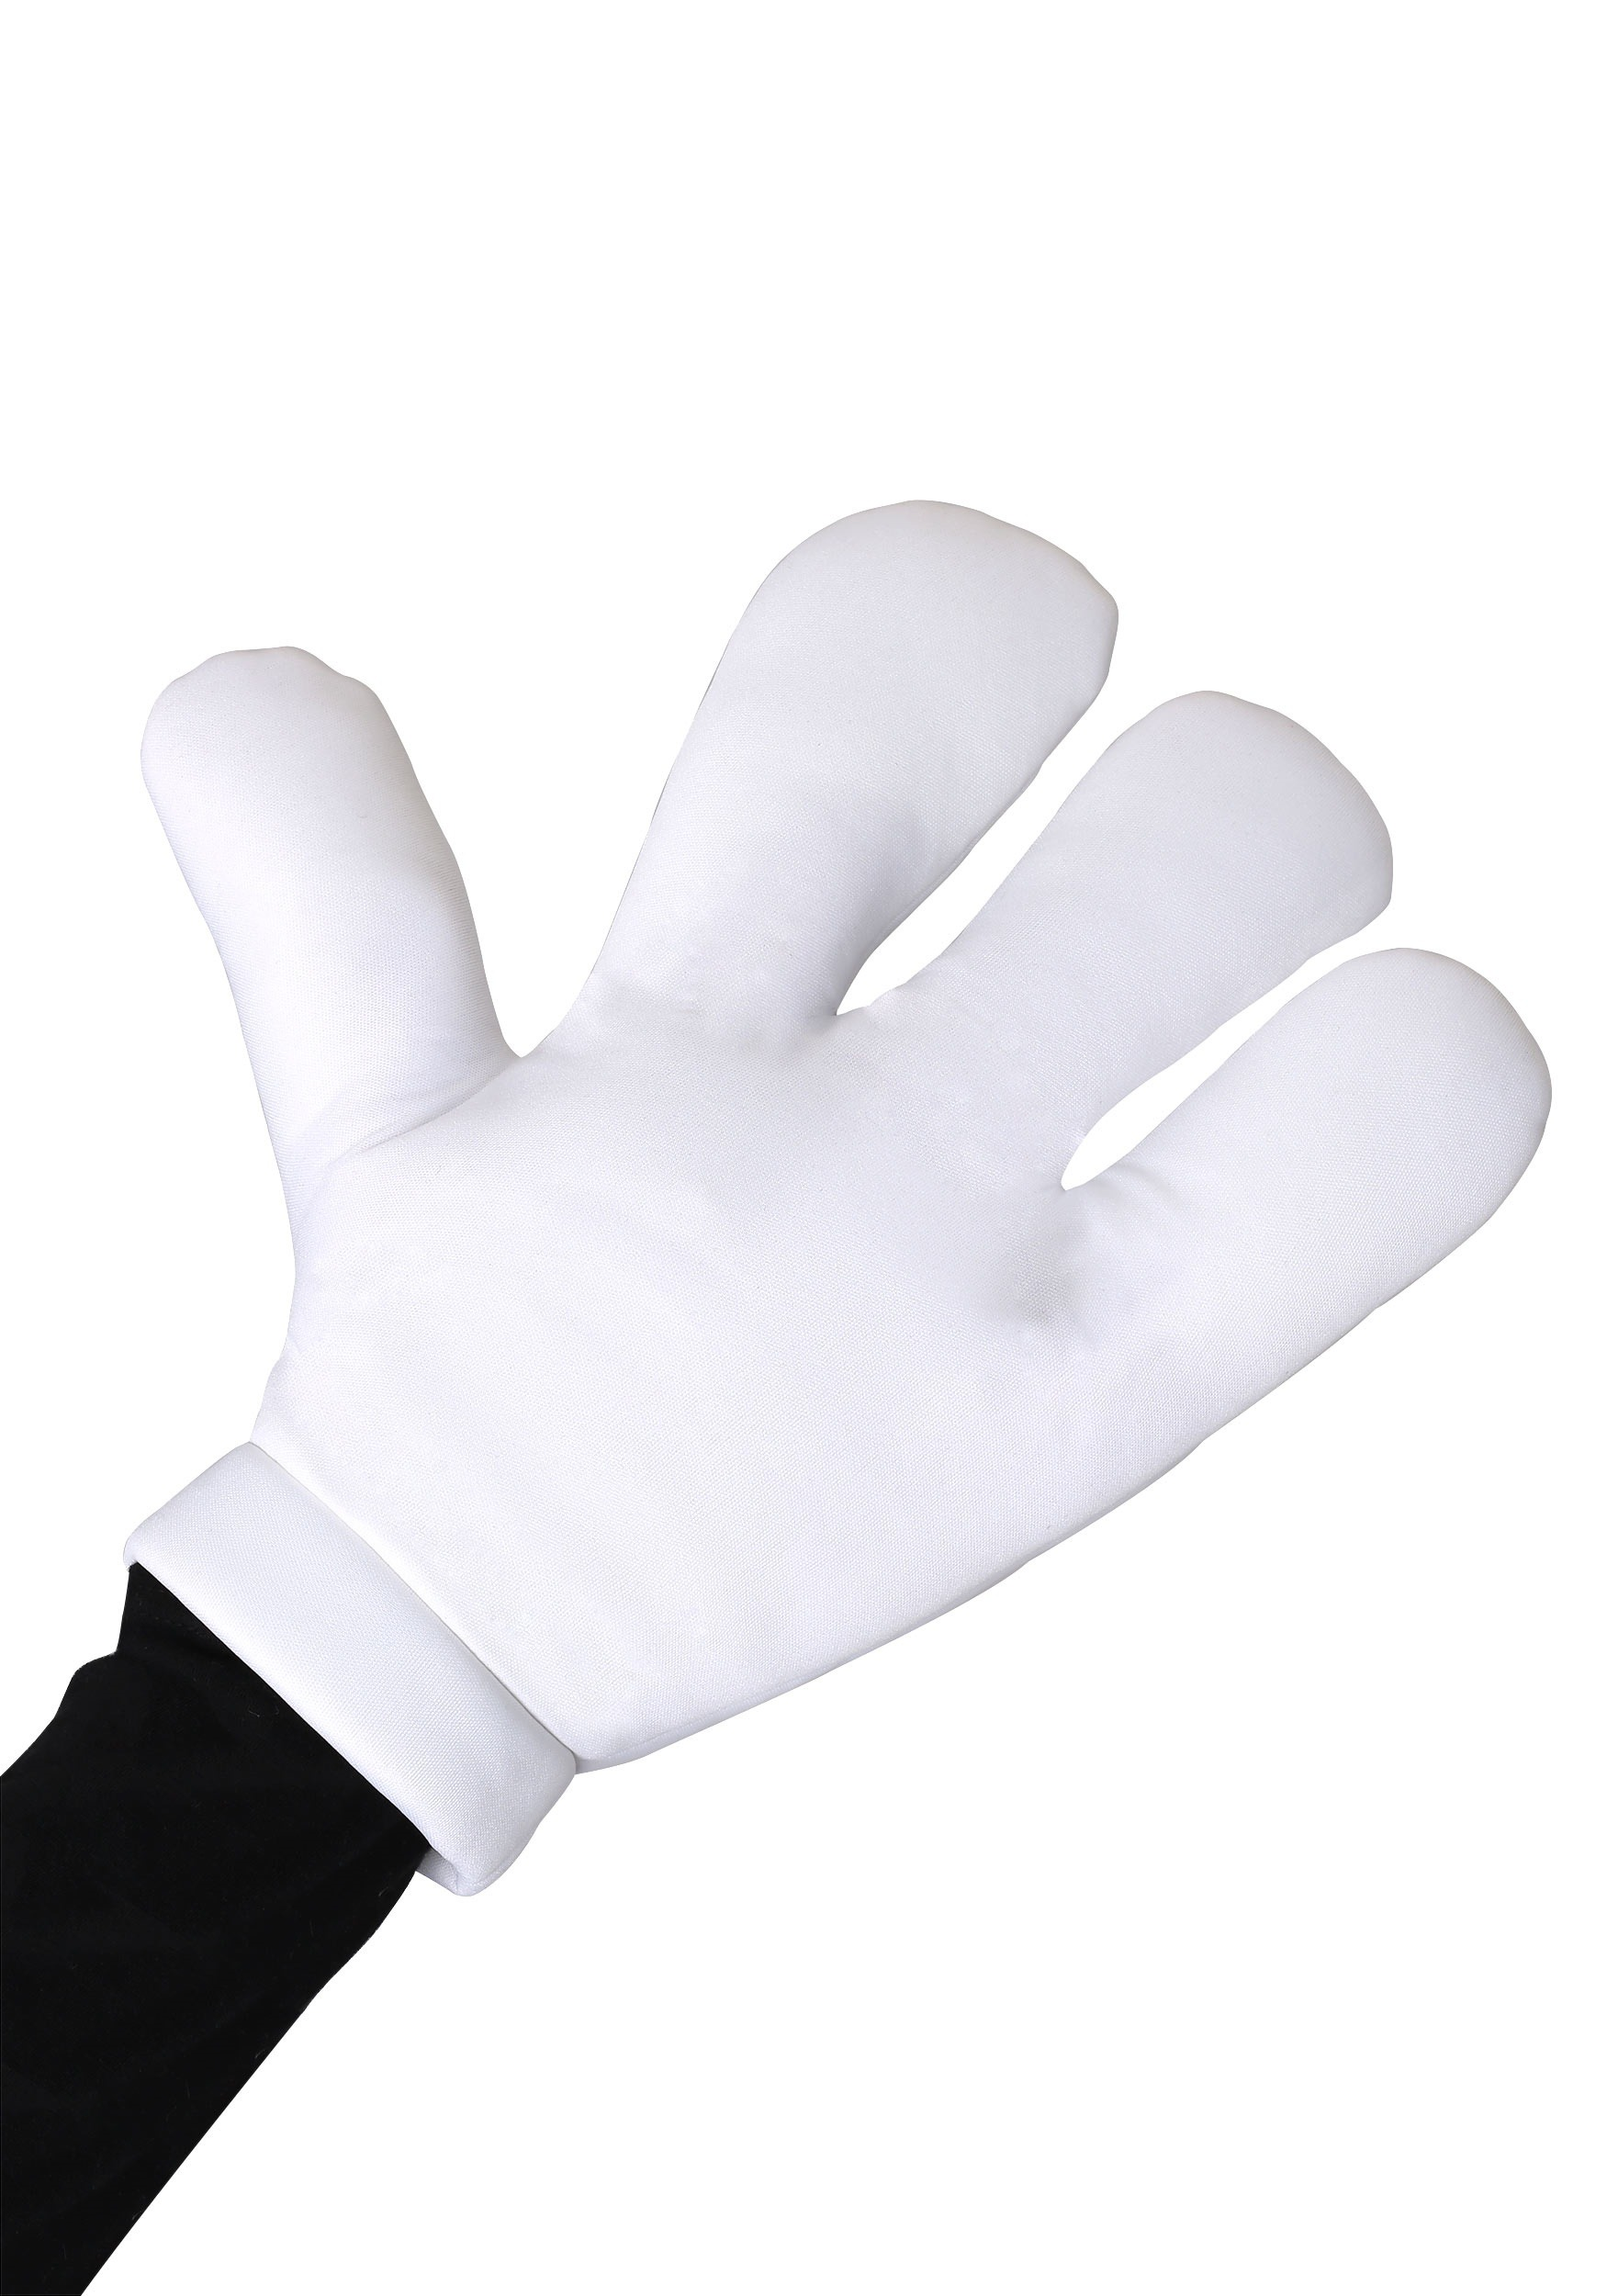 Giant Cartoon Hand Gloves For Adults-3996